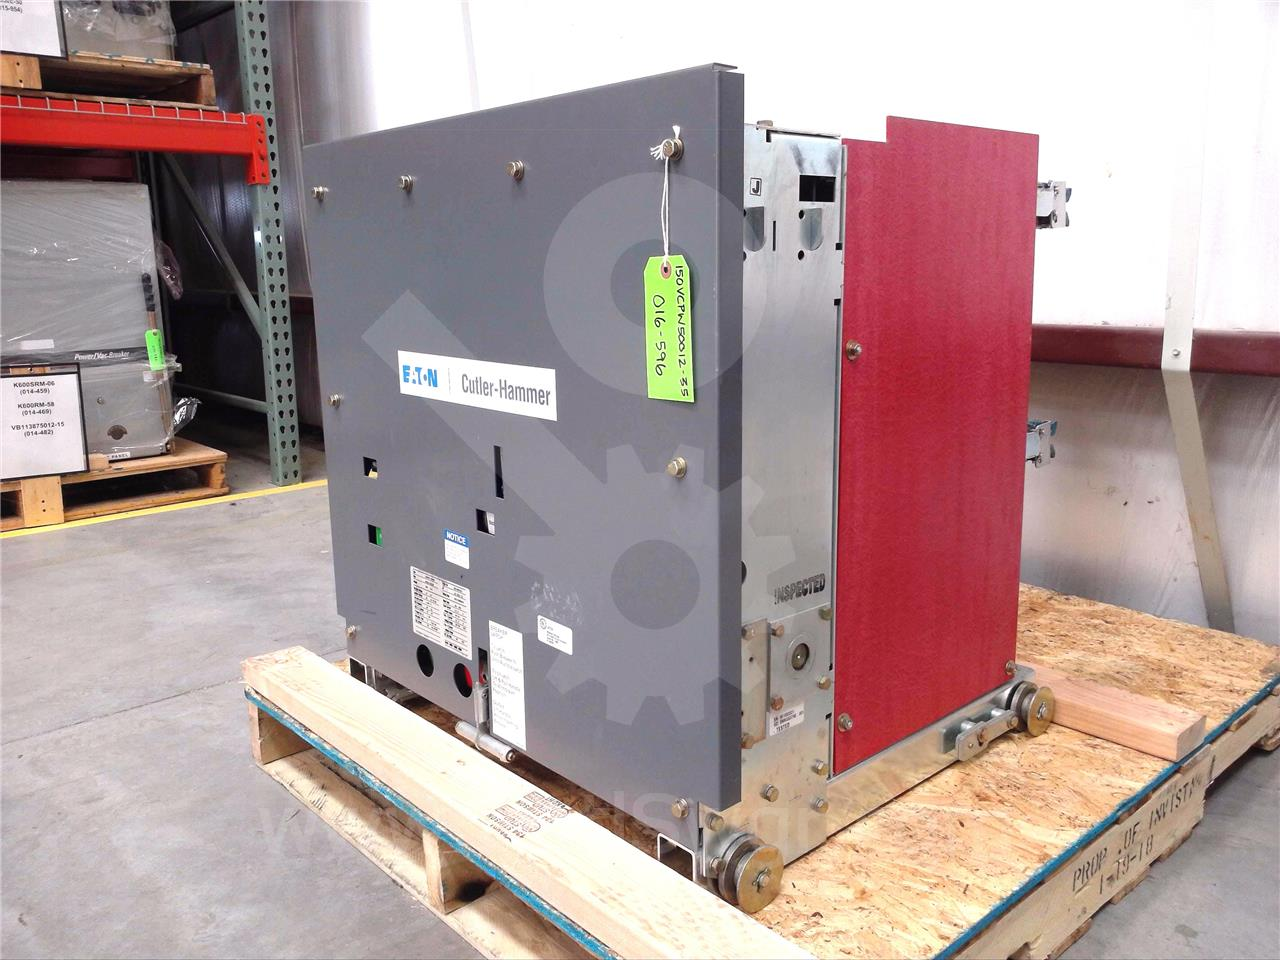 Westinghouse / Cutler Hammer 1200A CH 150VCP-W 500 (150VCP-W 500)